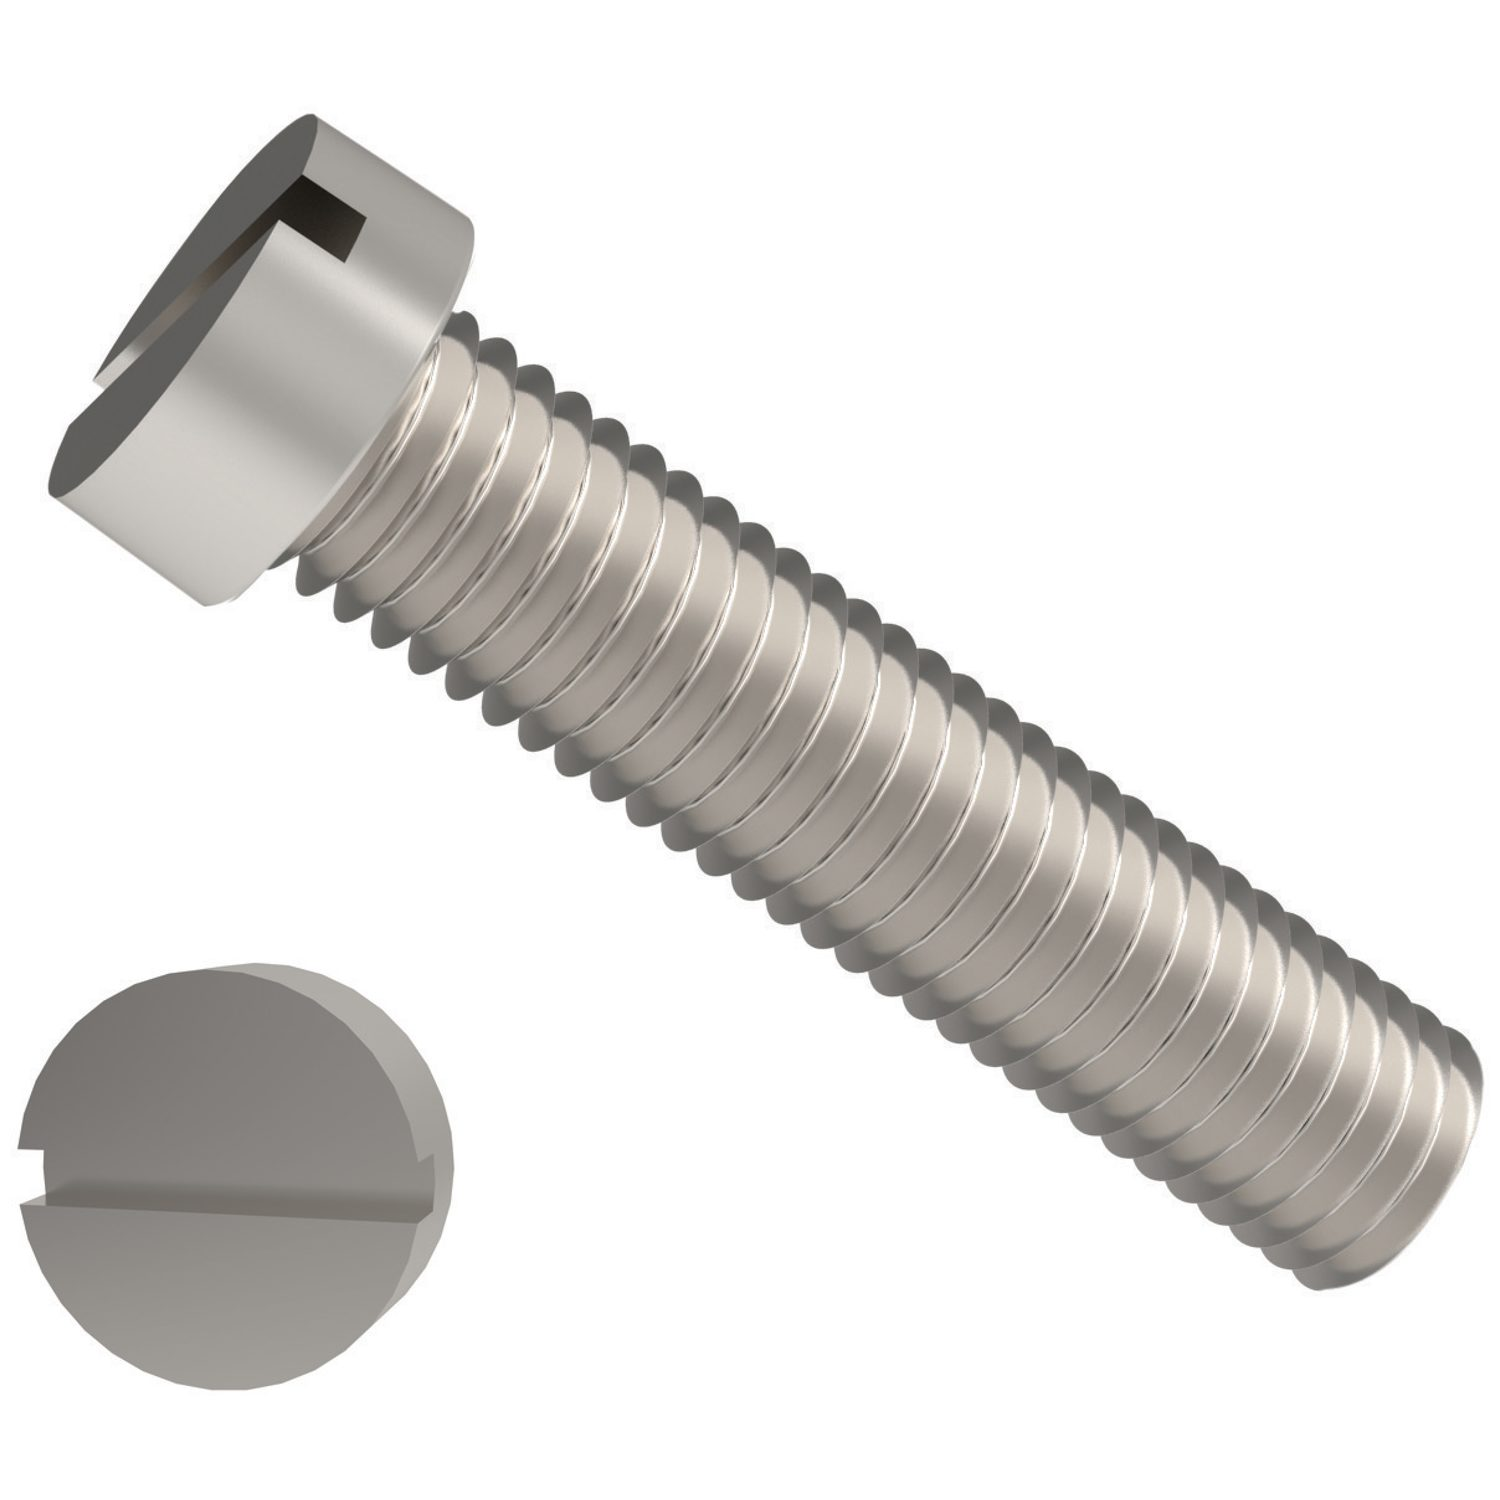 Slot Cheese Head Screws A4 stainless steel slot cheese head screws. Sizes range from M1,6 to M10. Manufactured to DIN 84.